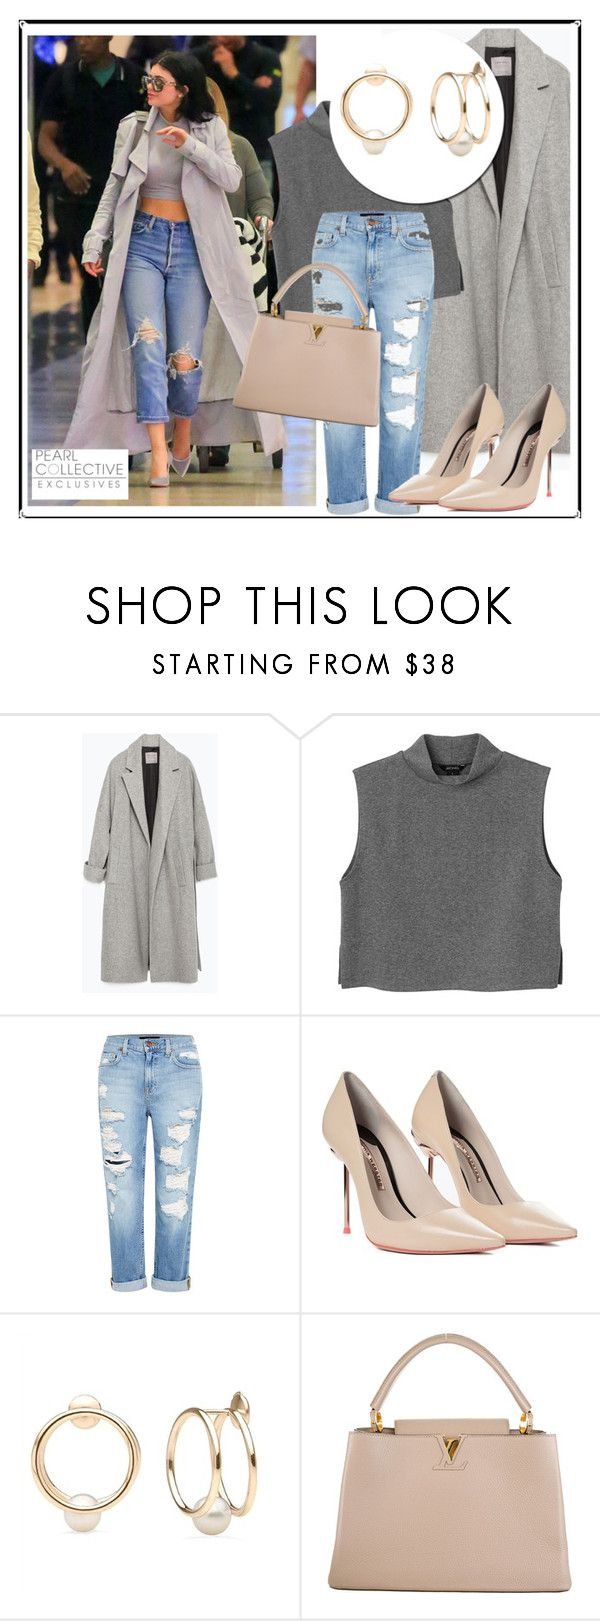 """""""SHOP - Pearl Collective - Earrings"""" by pearlcollective ❤ liked on Polyvore featuring Zara, Monki, Genetic Denim, Sophia Webster and Louis Vuitton"""